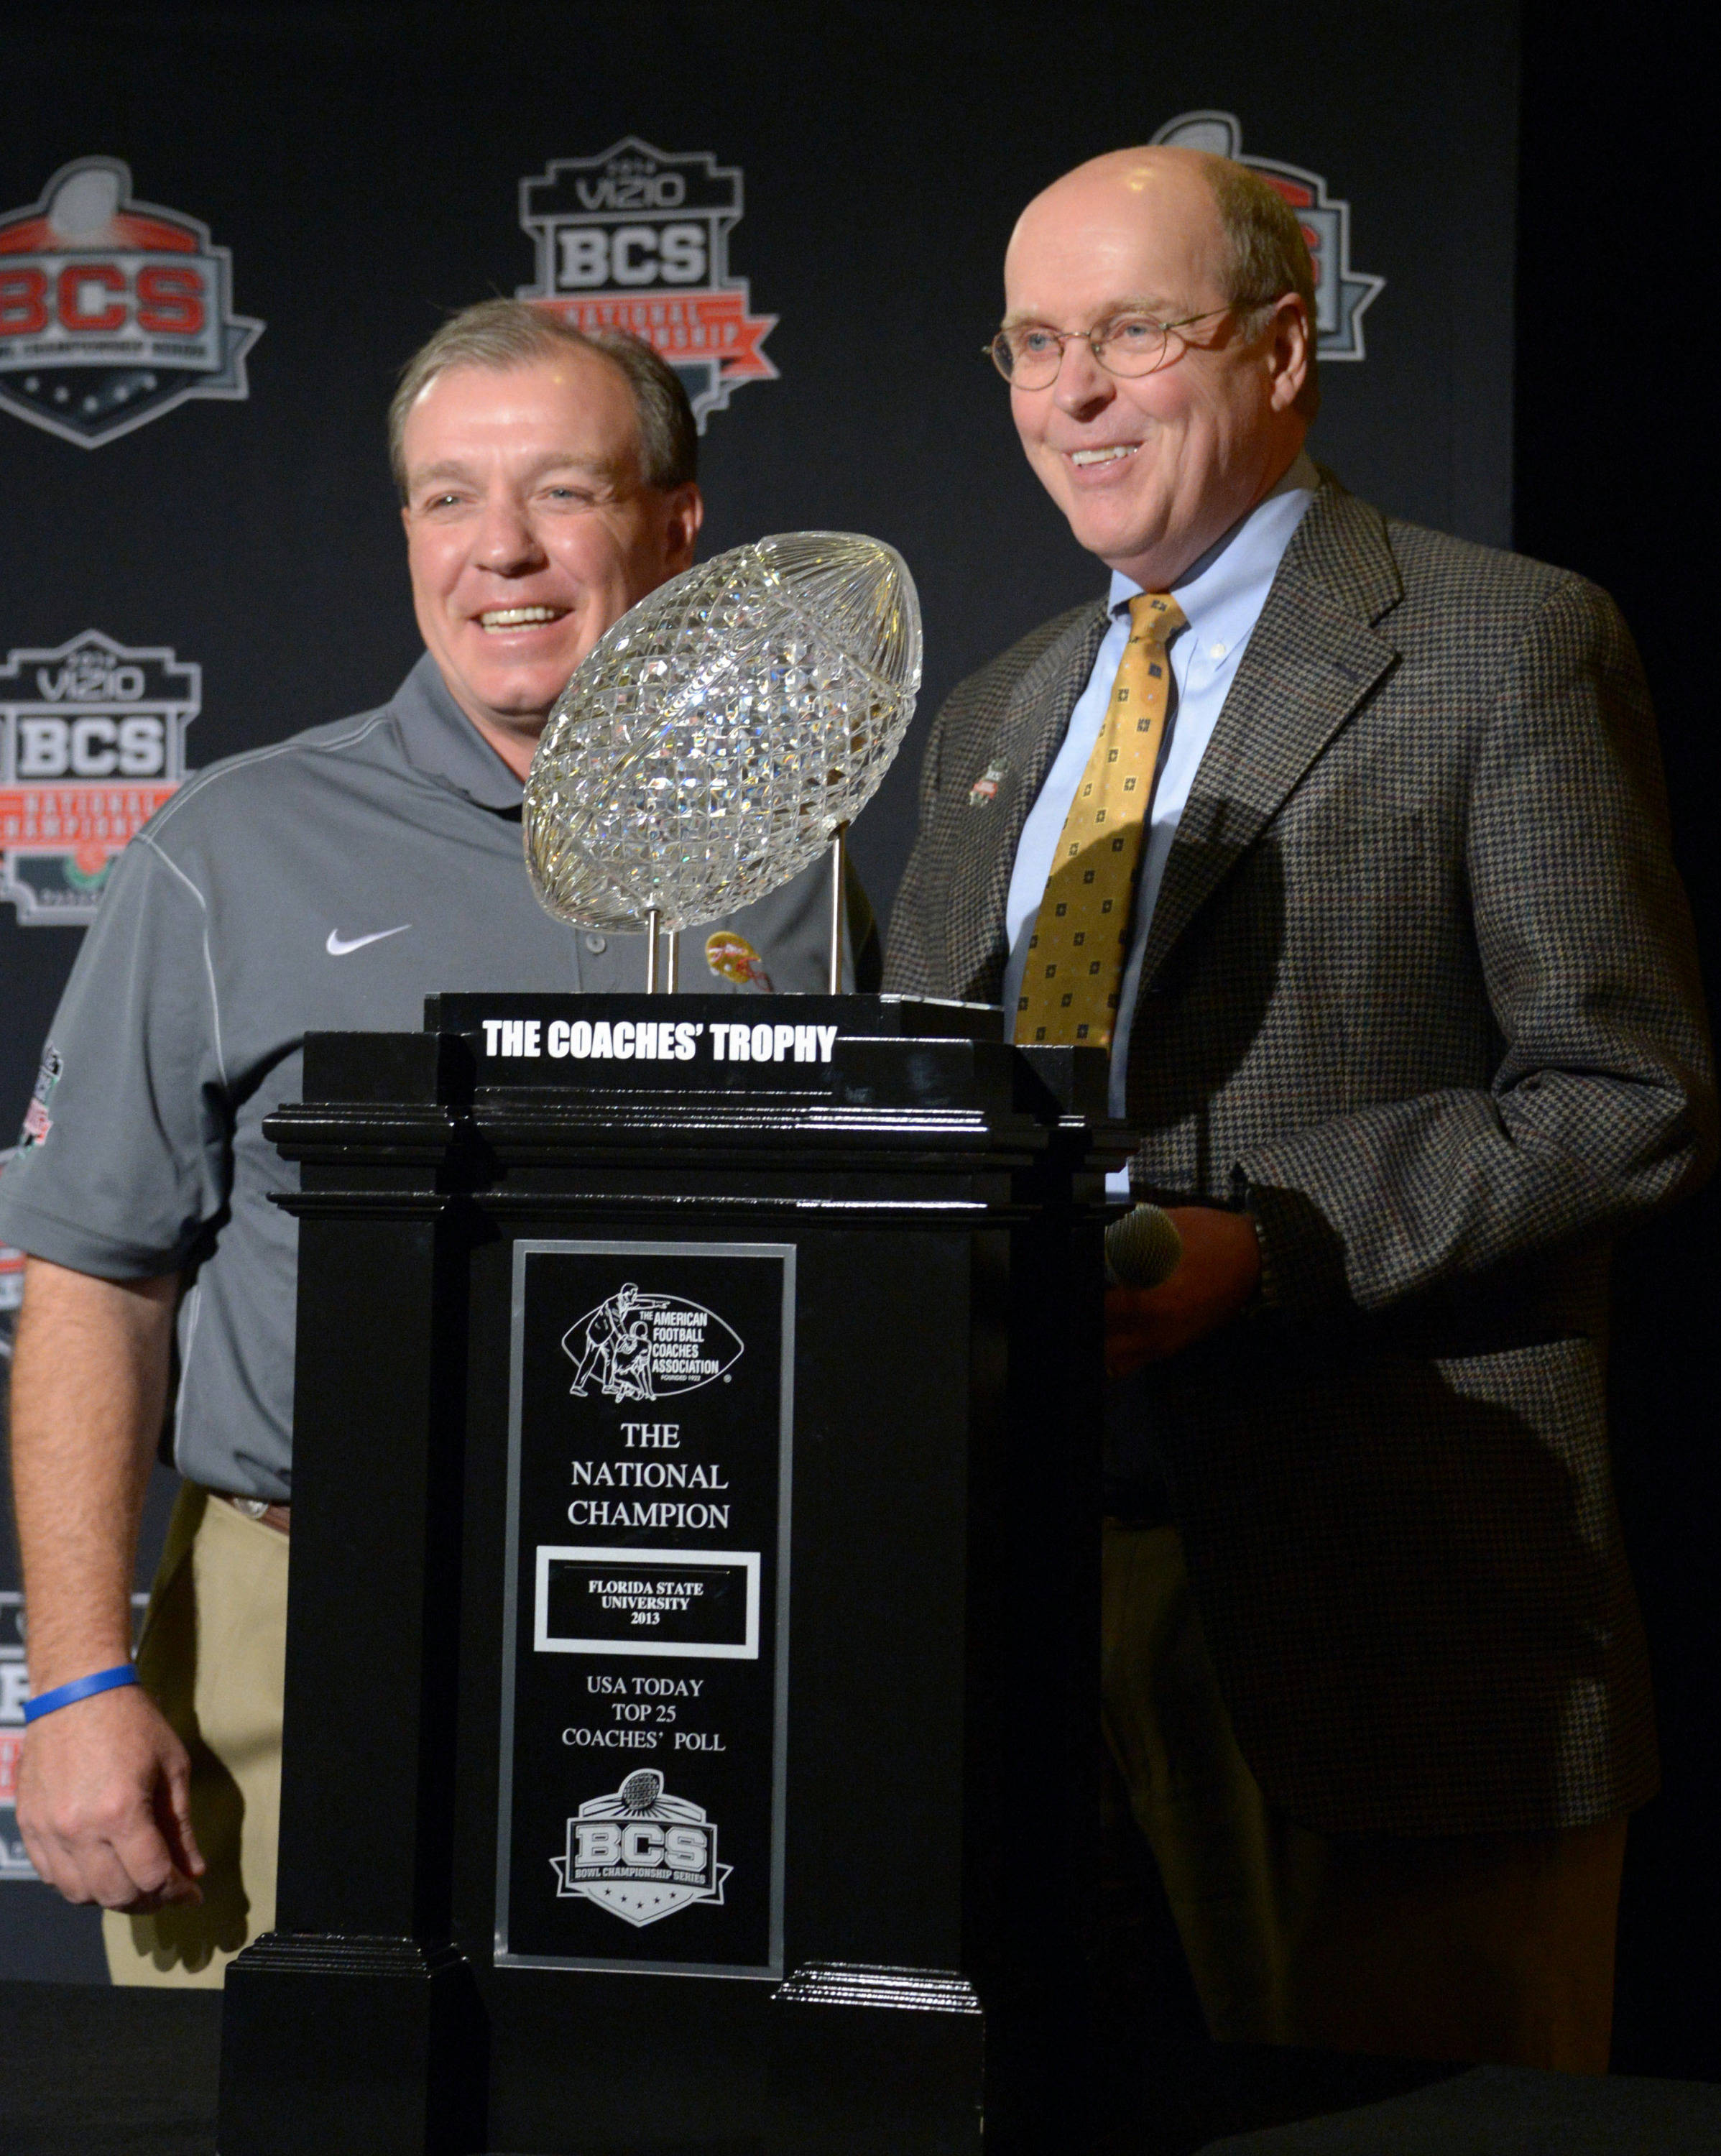 Florida State Seminoles coach Jimbo Fisher (left) poses with BCS executive director Bill Hancock and the Coaches Trophy at 2014 BCS National Championship press conference at Newport Beach Marriott. Mandatory Credit: Kirby Lee-USA TODAY Sports